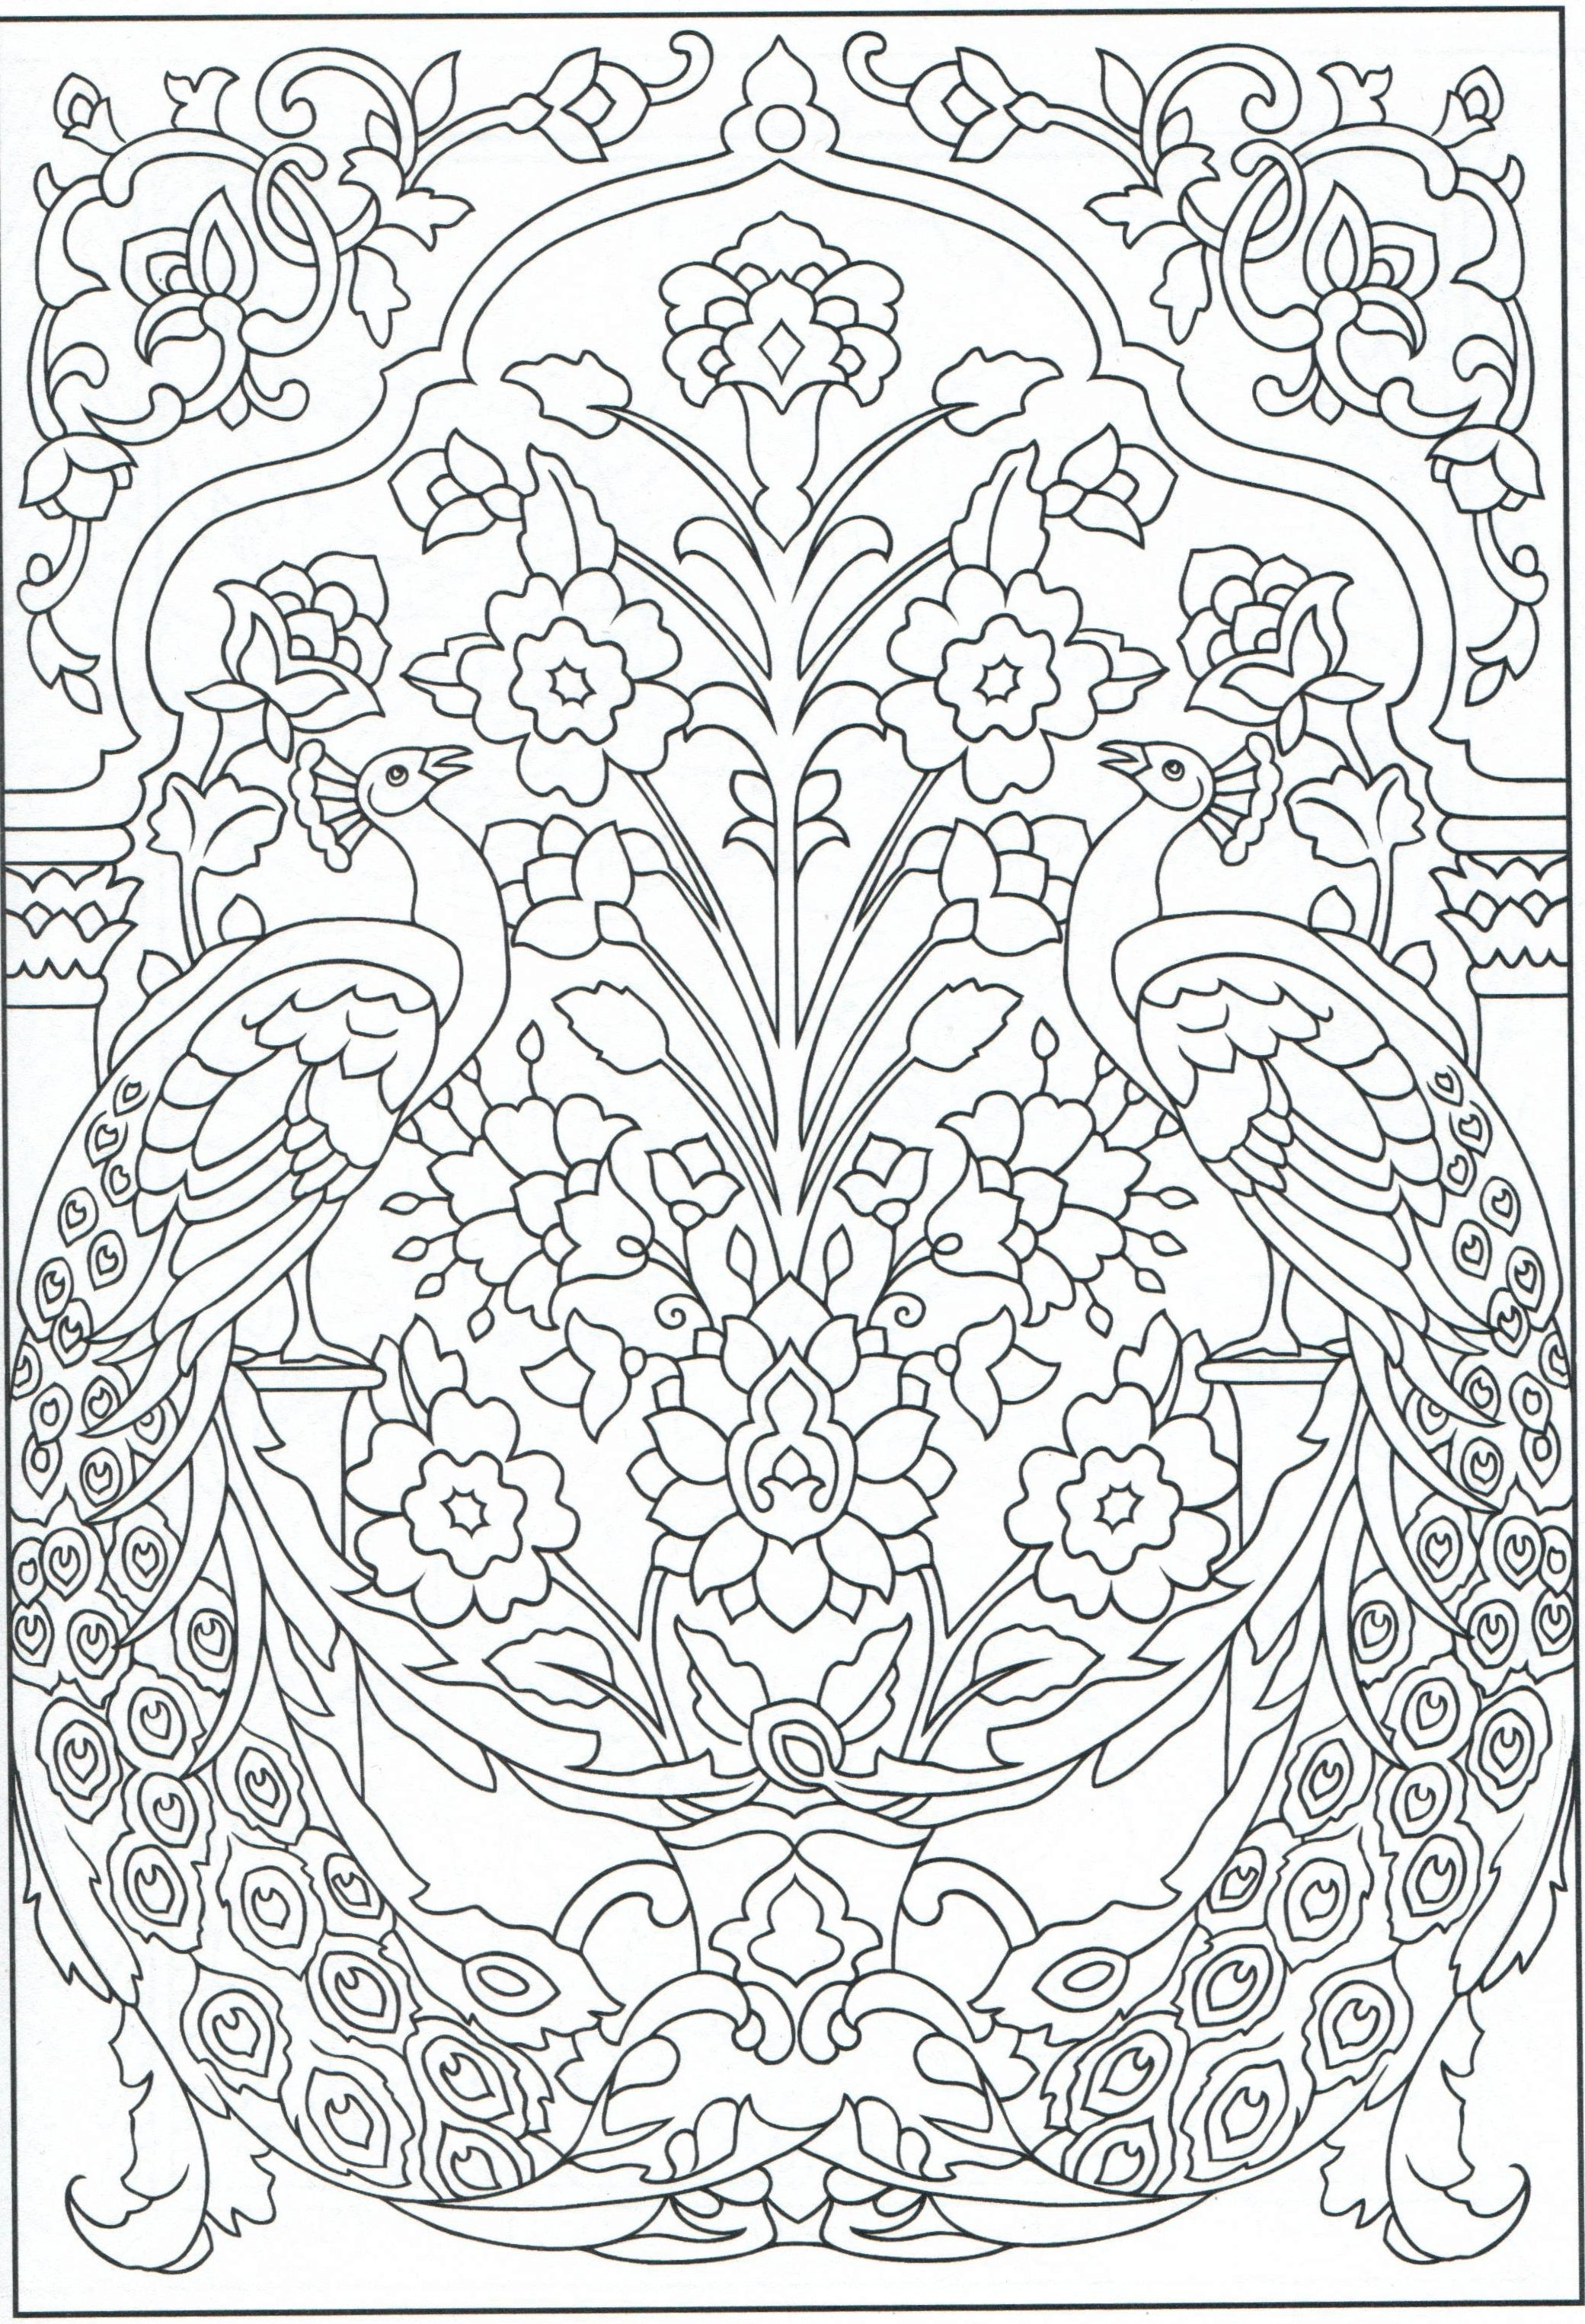 Coloring Pages Peacock Printable Designs Peacock Coloring Pages